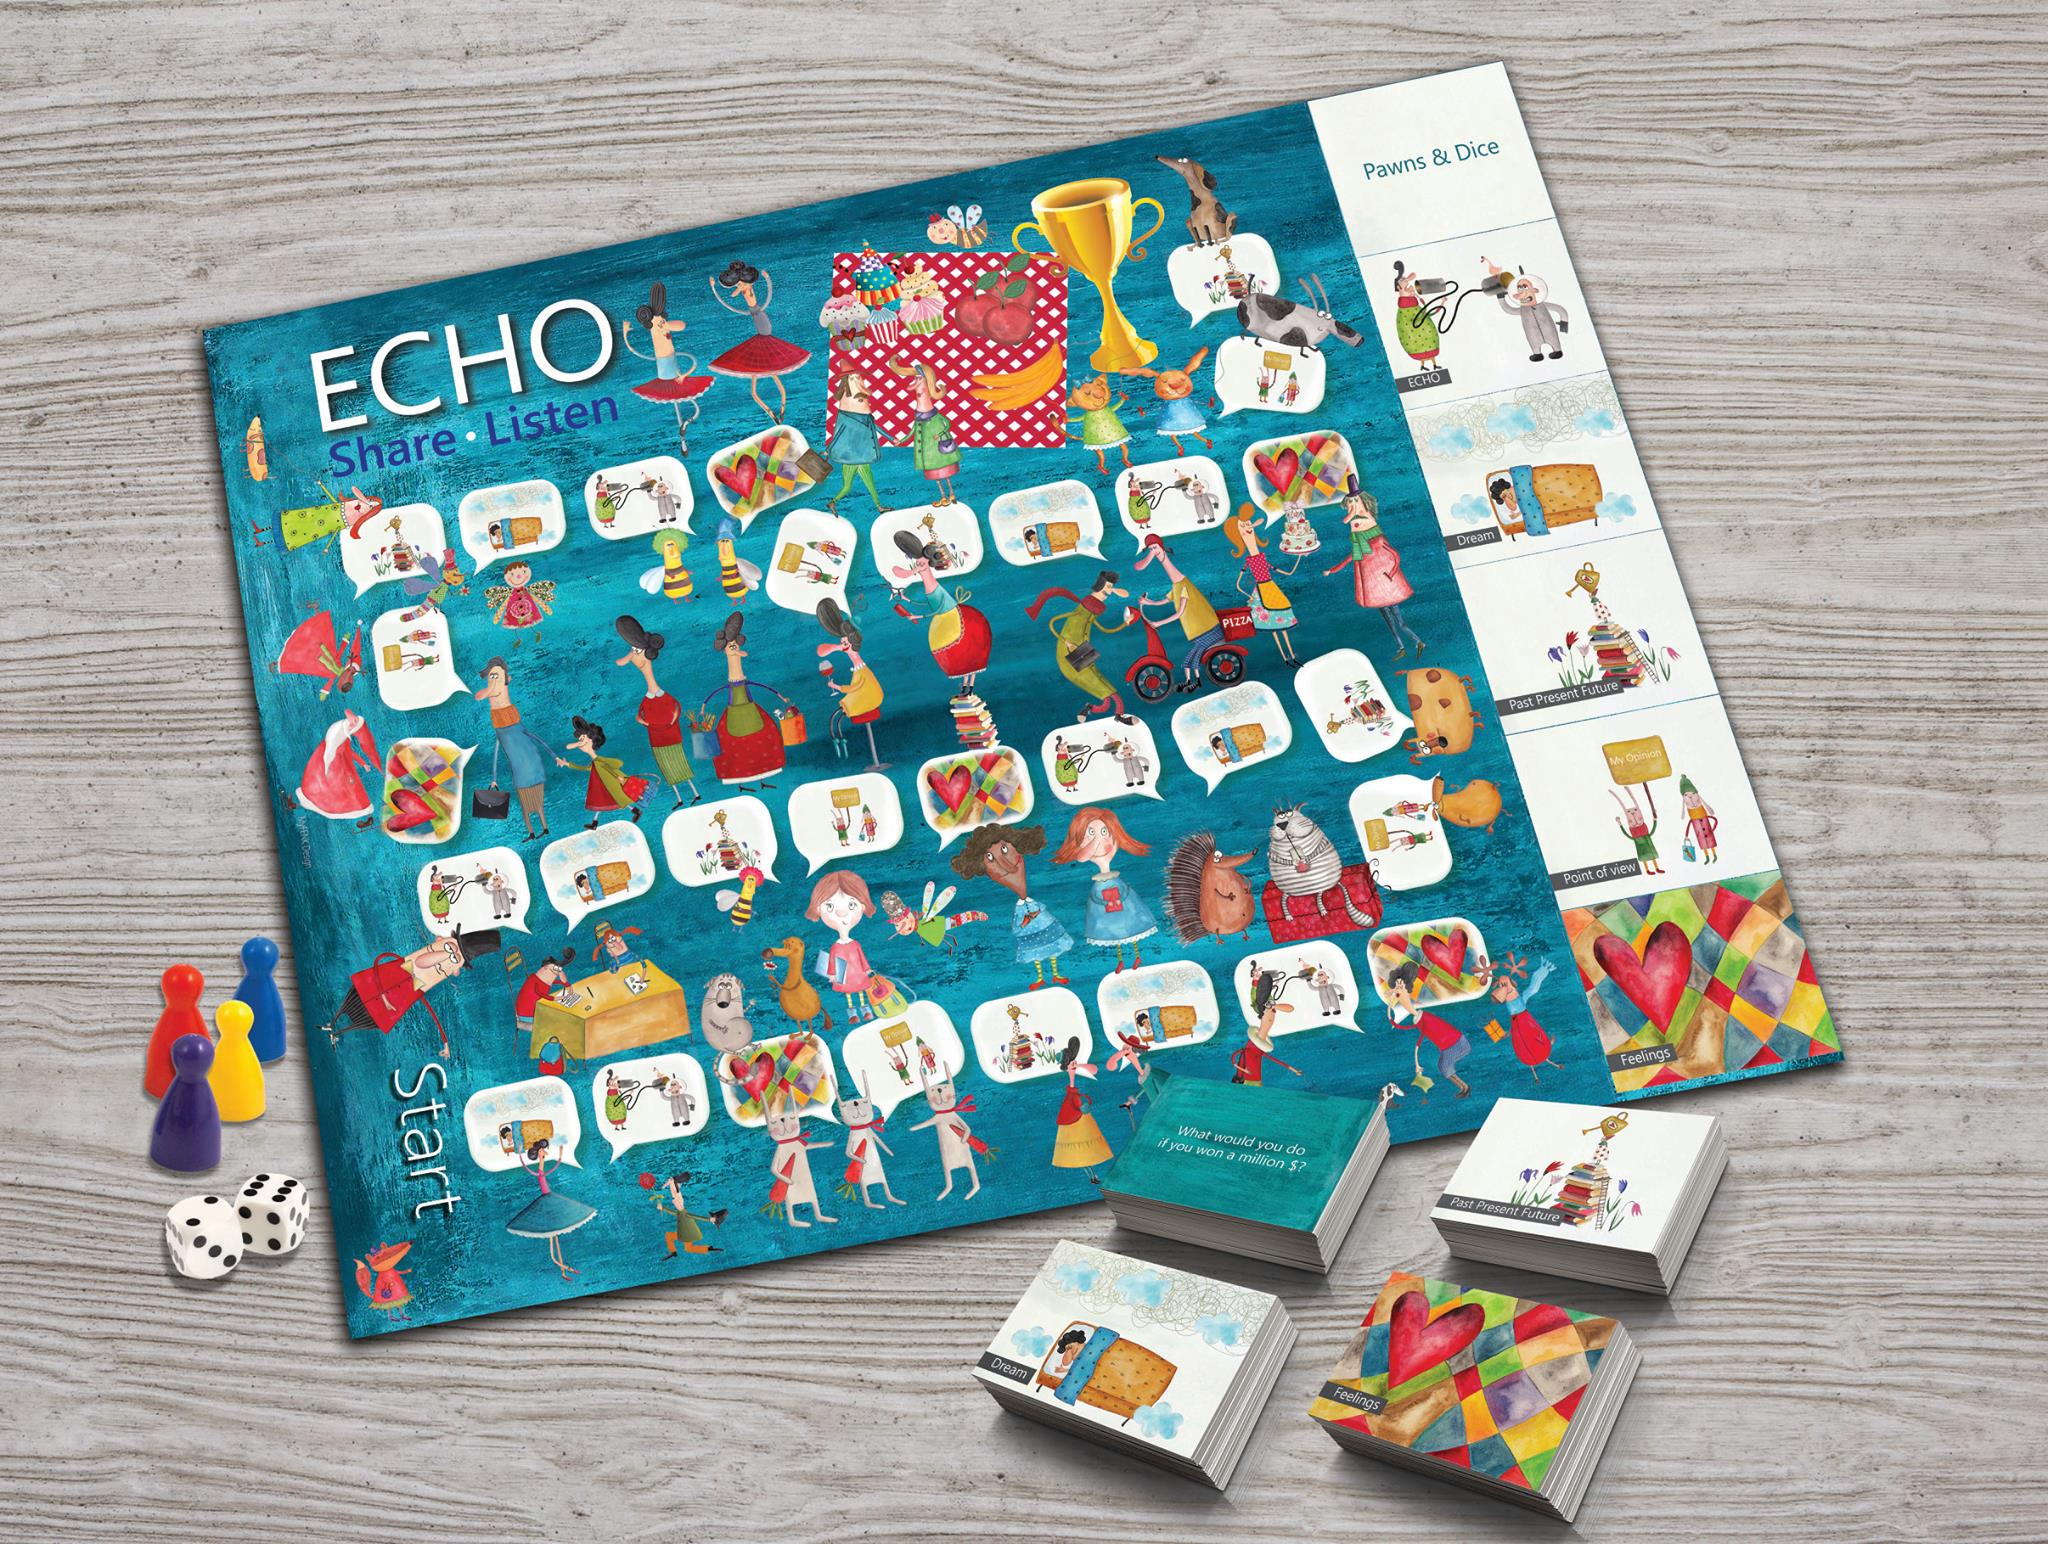 Echo board game, family game